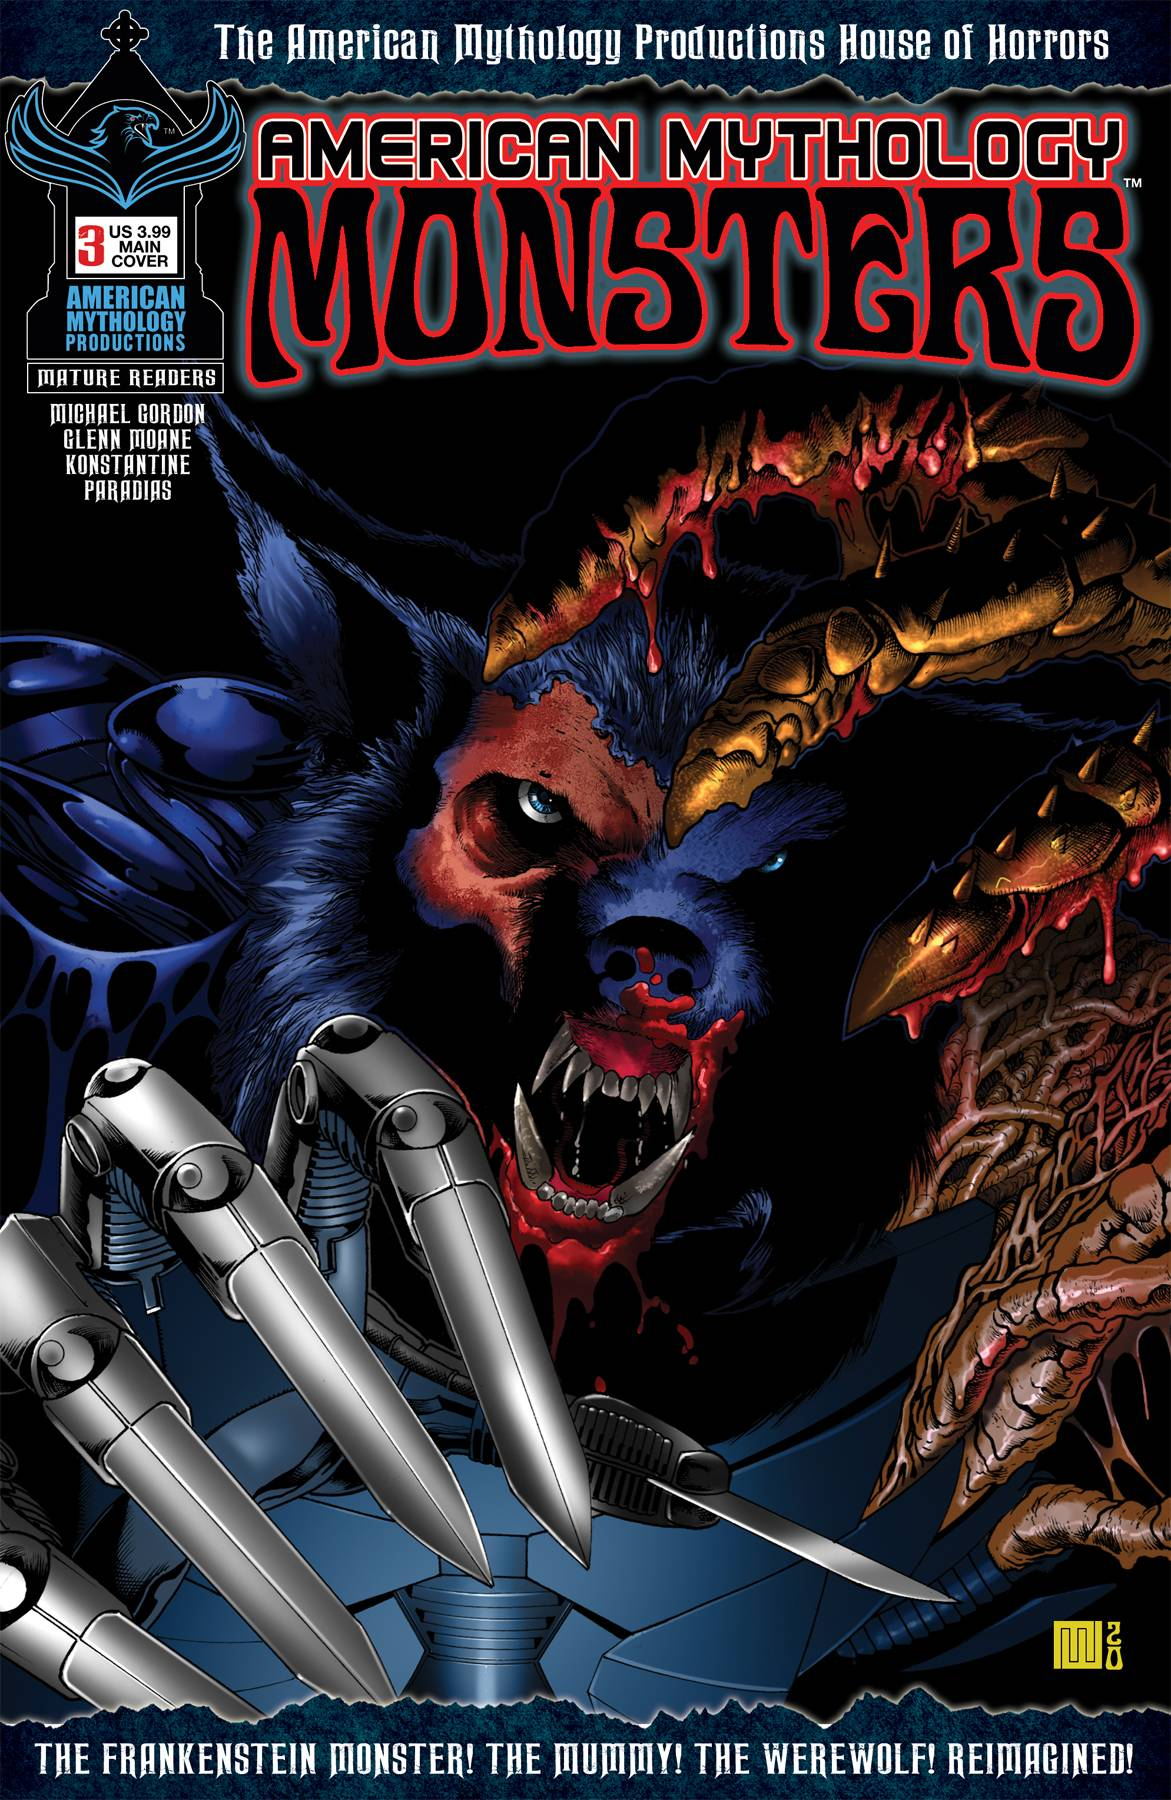 AMERICAN MYTHOLOGY MONSTERS #3 CVR A WOLFER (MR)